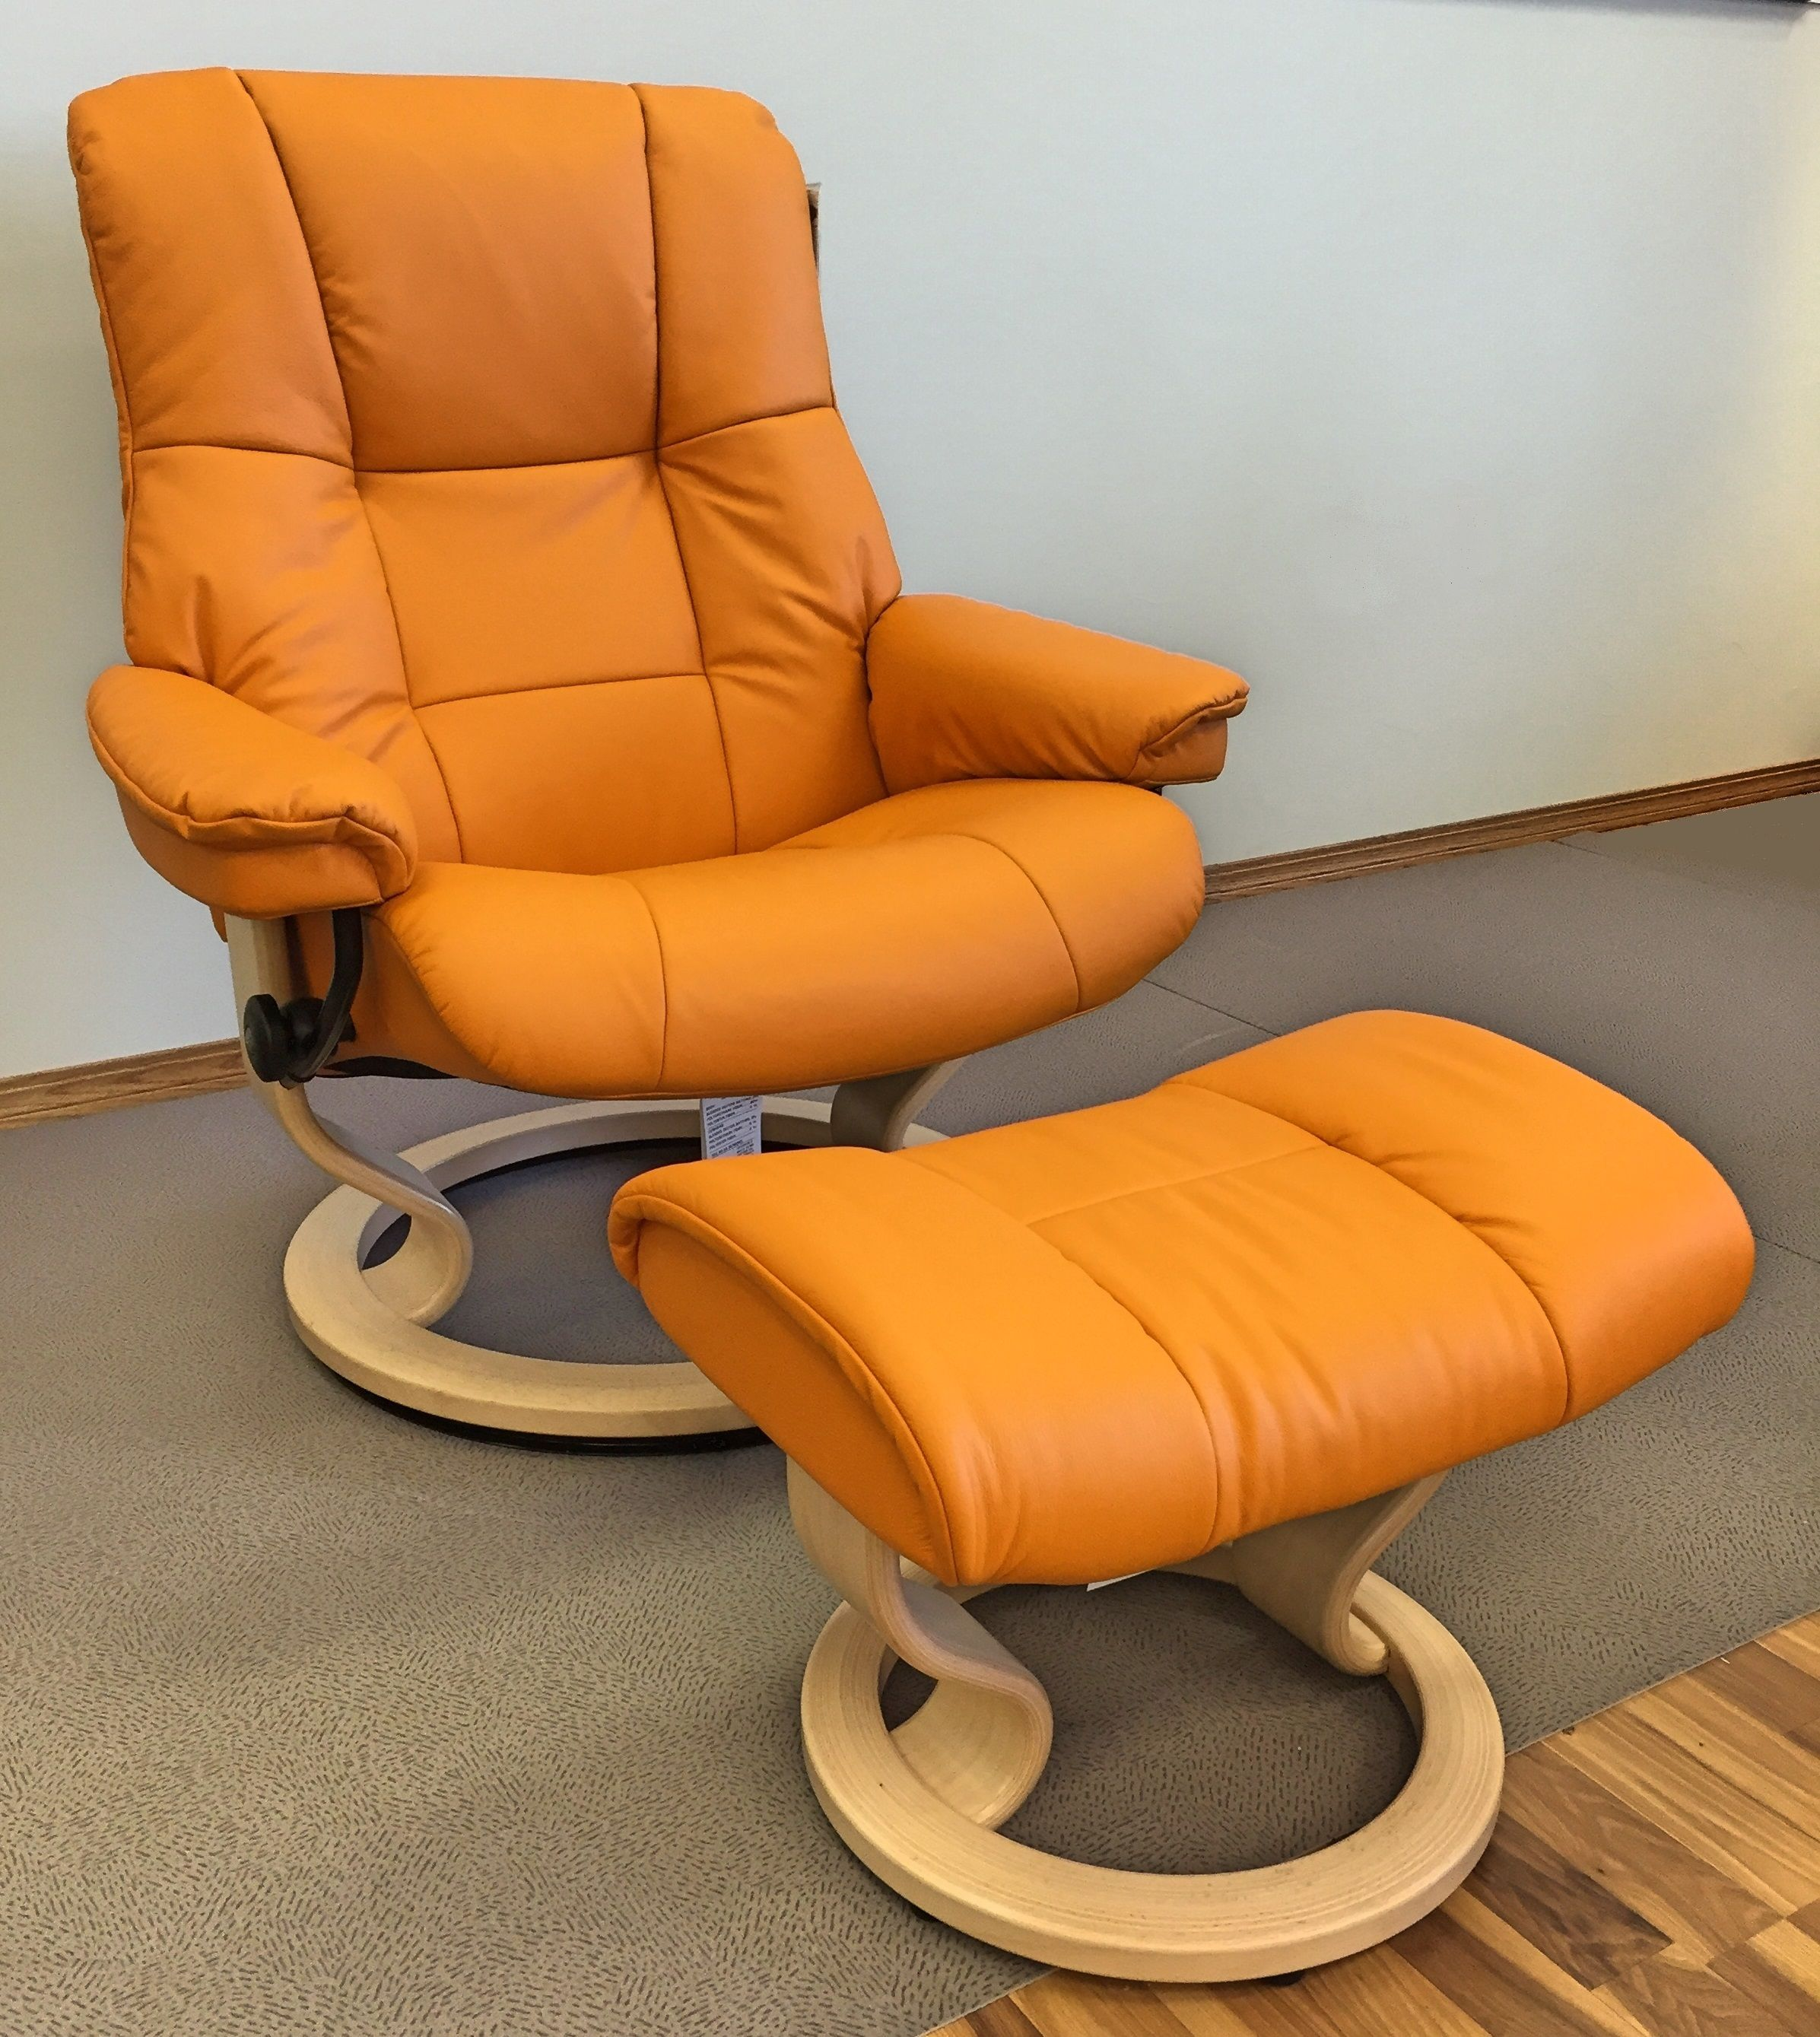 stressless chair similar king kokoda review ekornes mayfair large in paloma clementine with